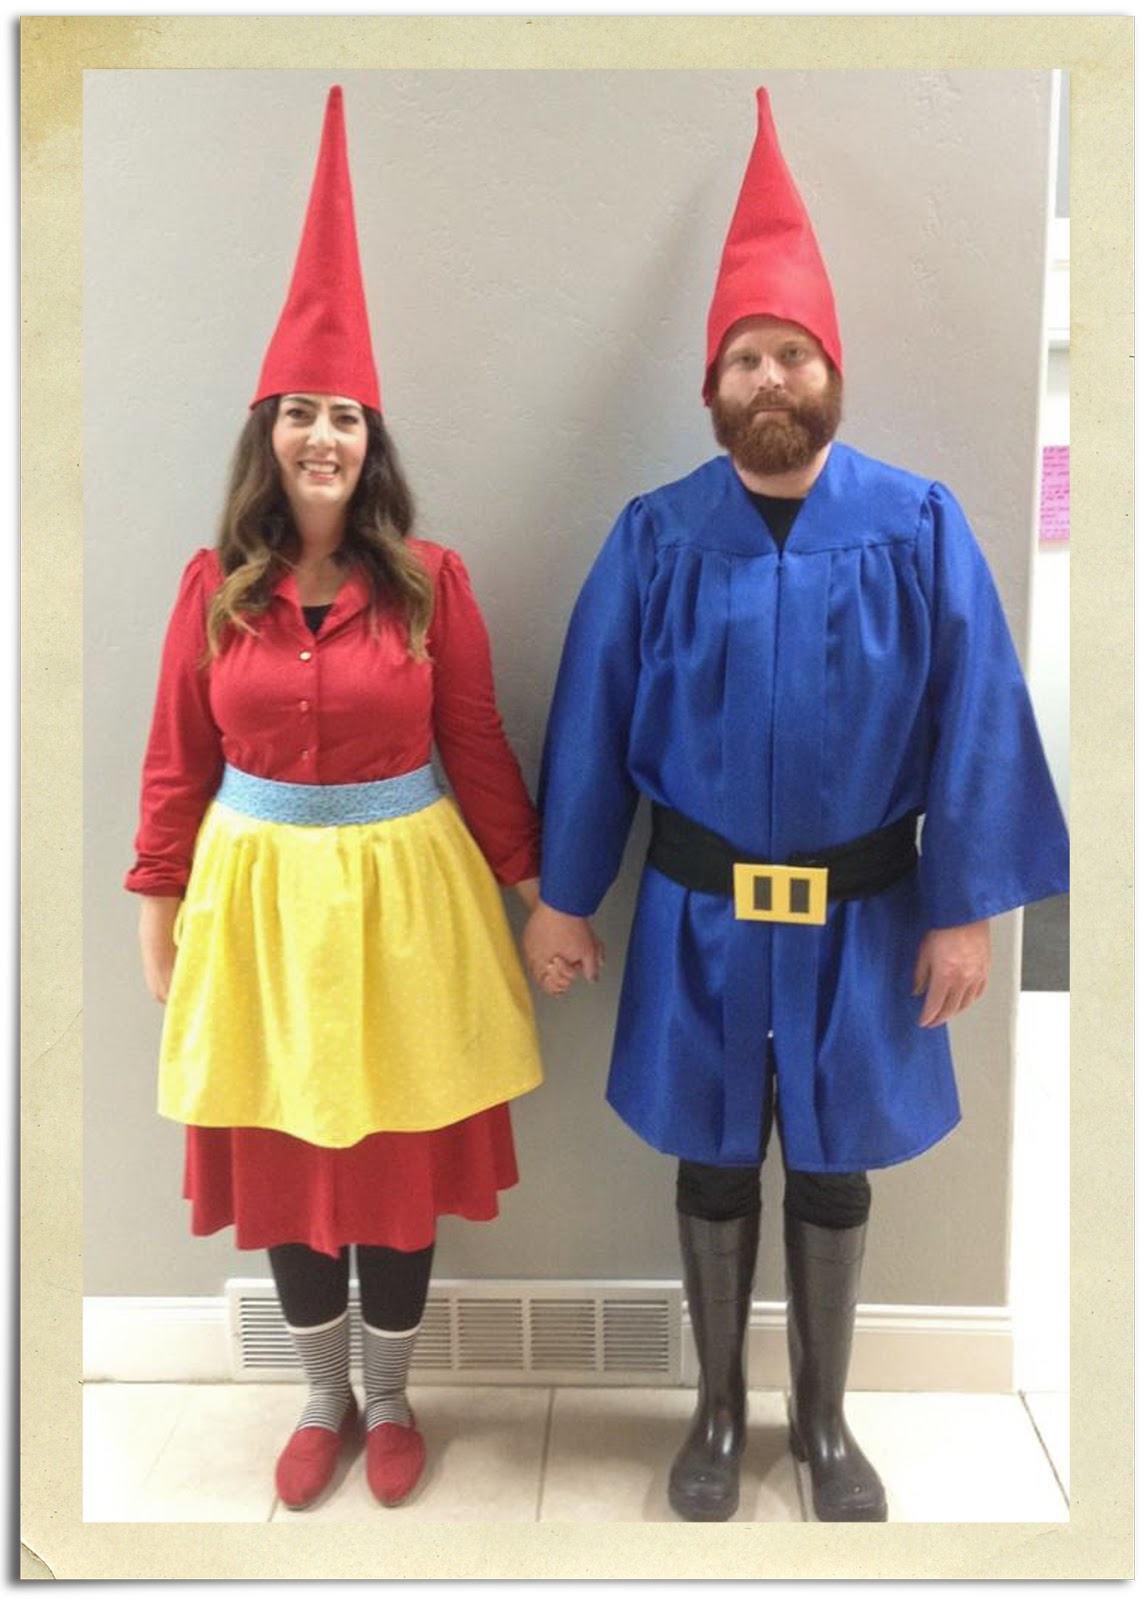 my darling and creative daughter in law ashlee put together these garden gnome costumes for their annual friends halloween party